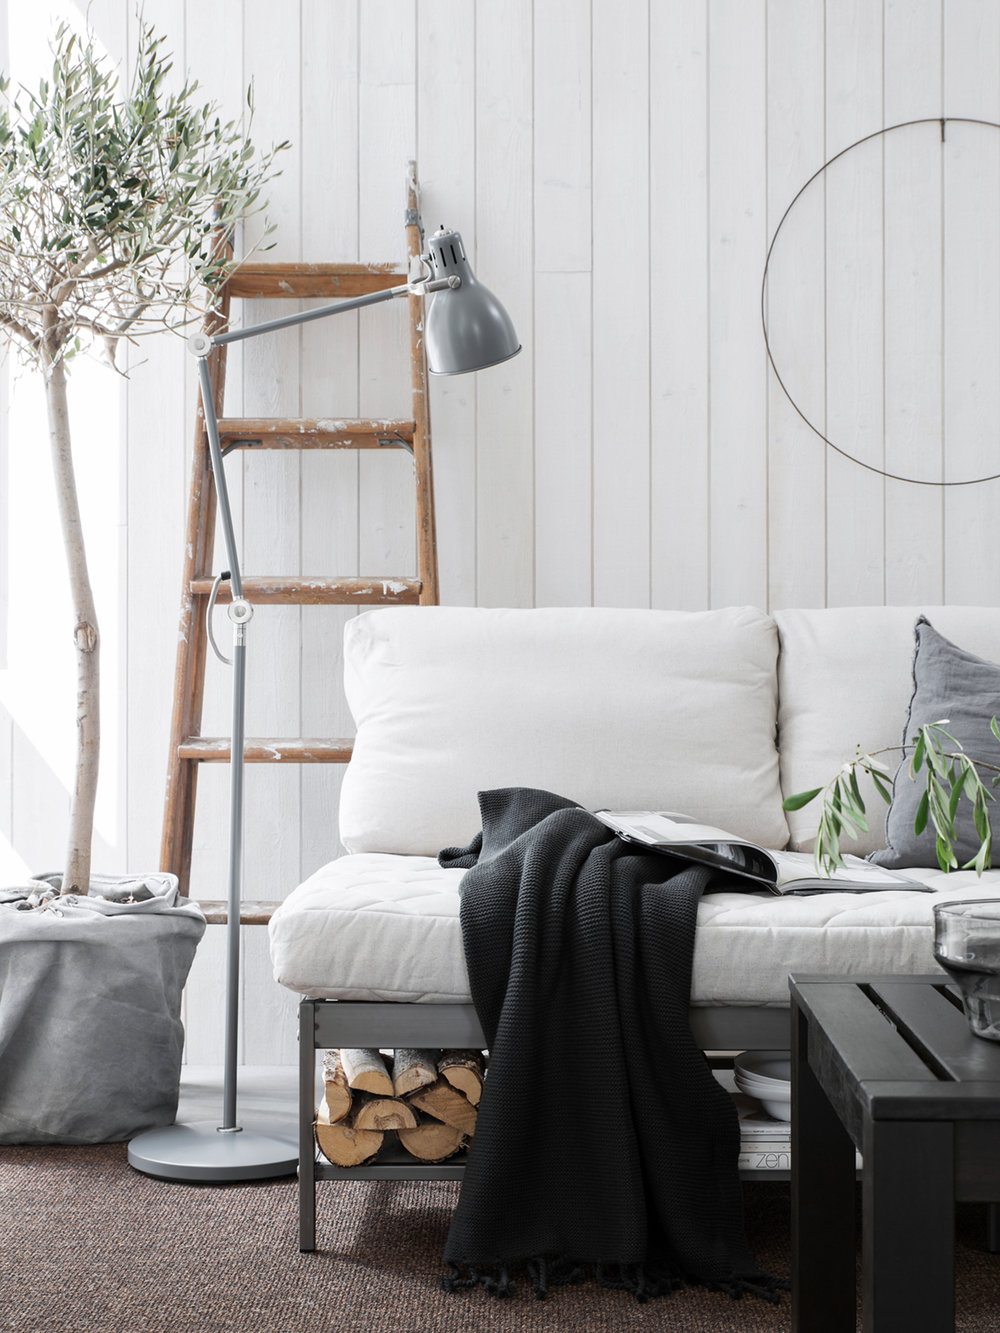 Client: IKEA for project Livet Hemma (Life at Home).  Styling by Pella Hedeby